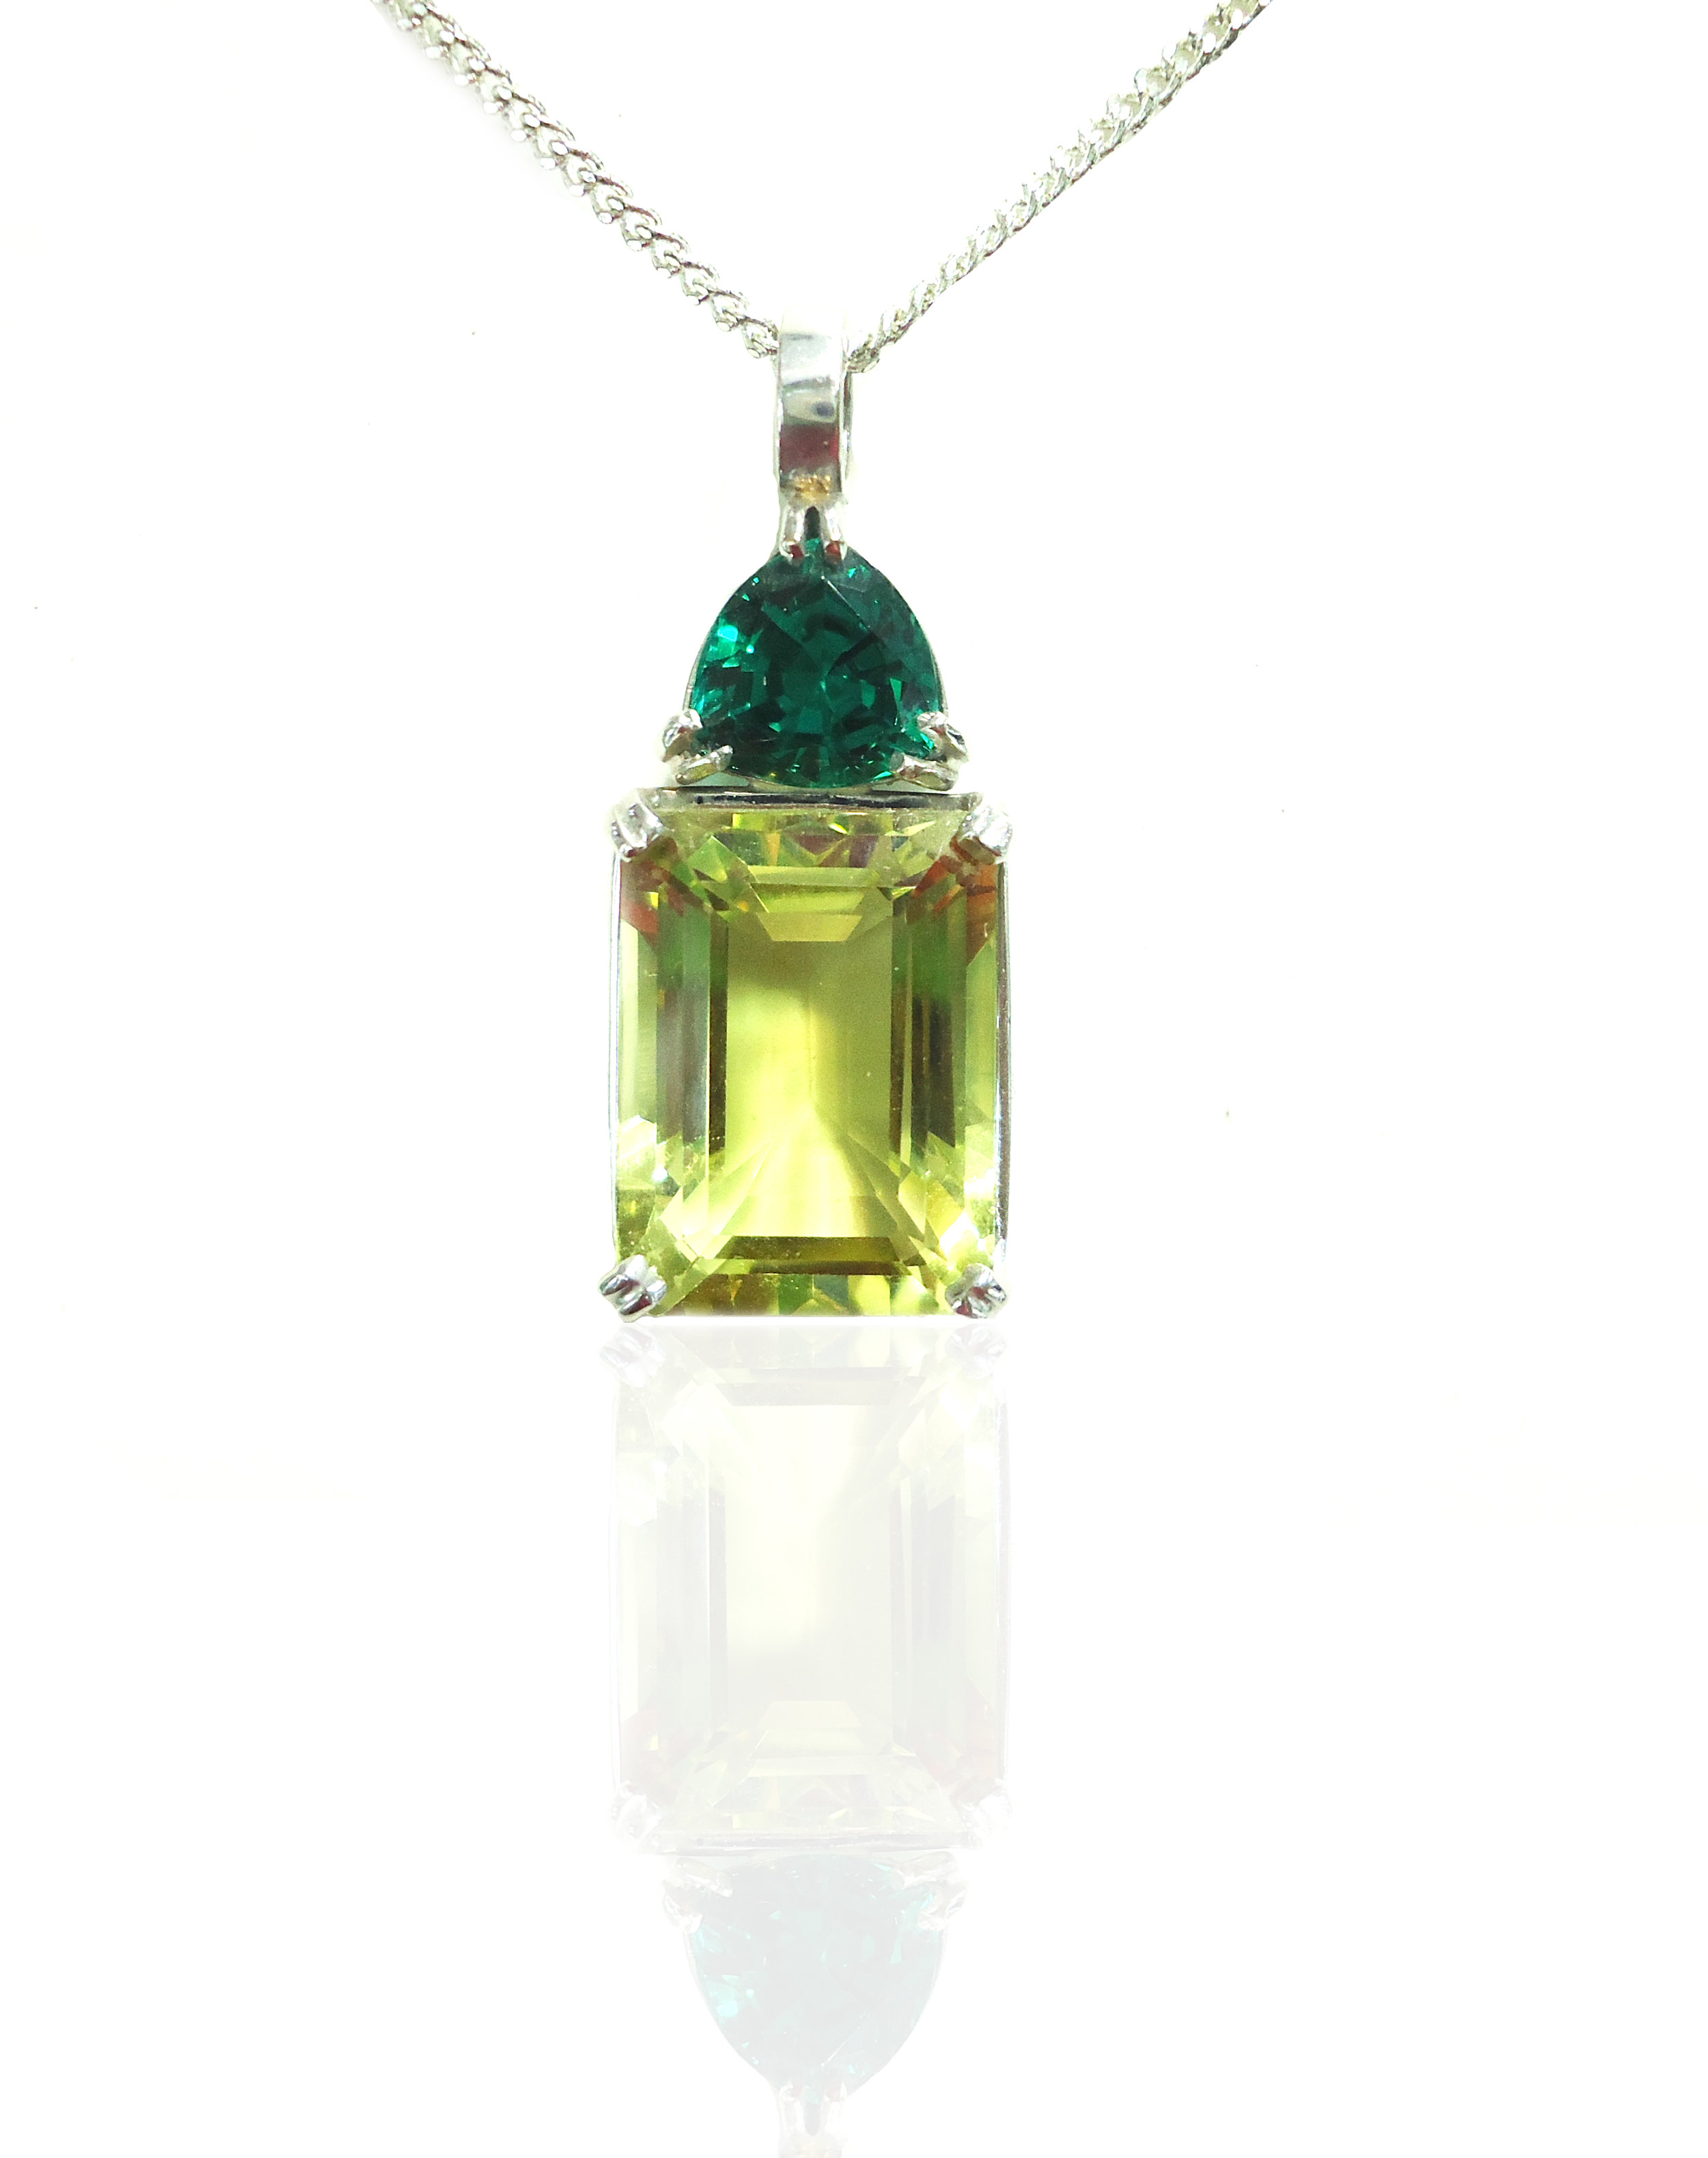 Emerald & Lemon Quartz pendant!